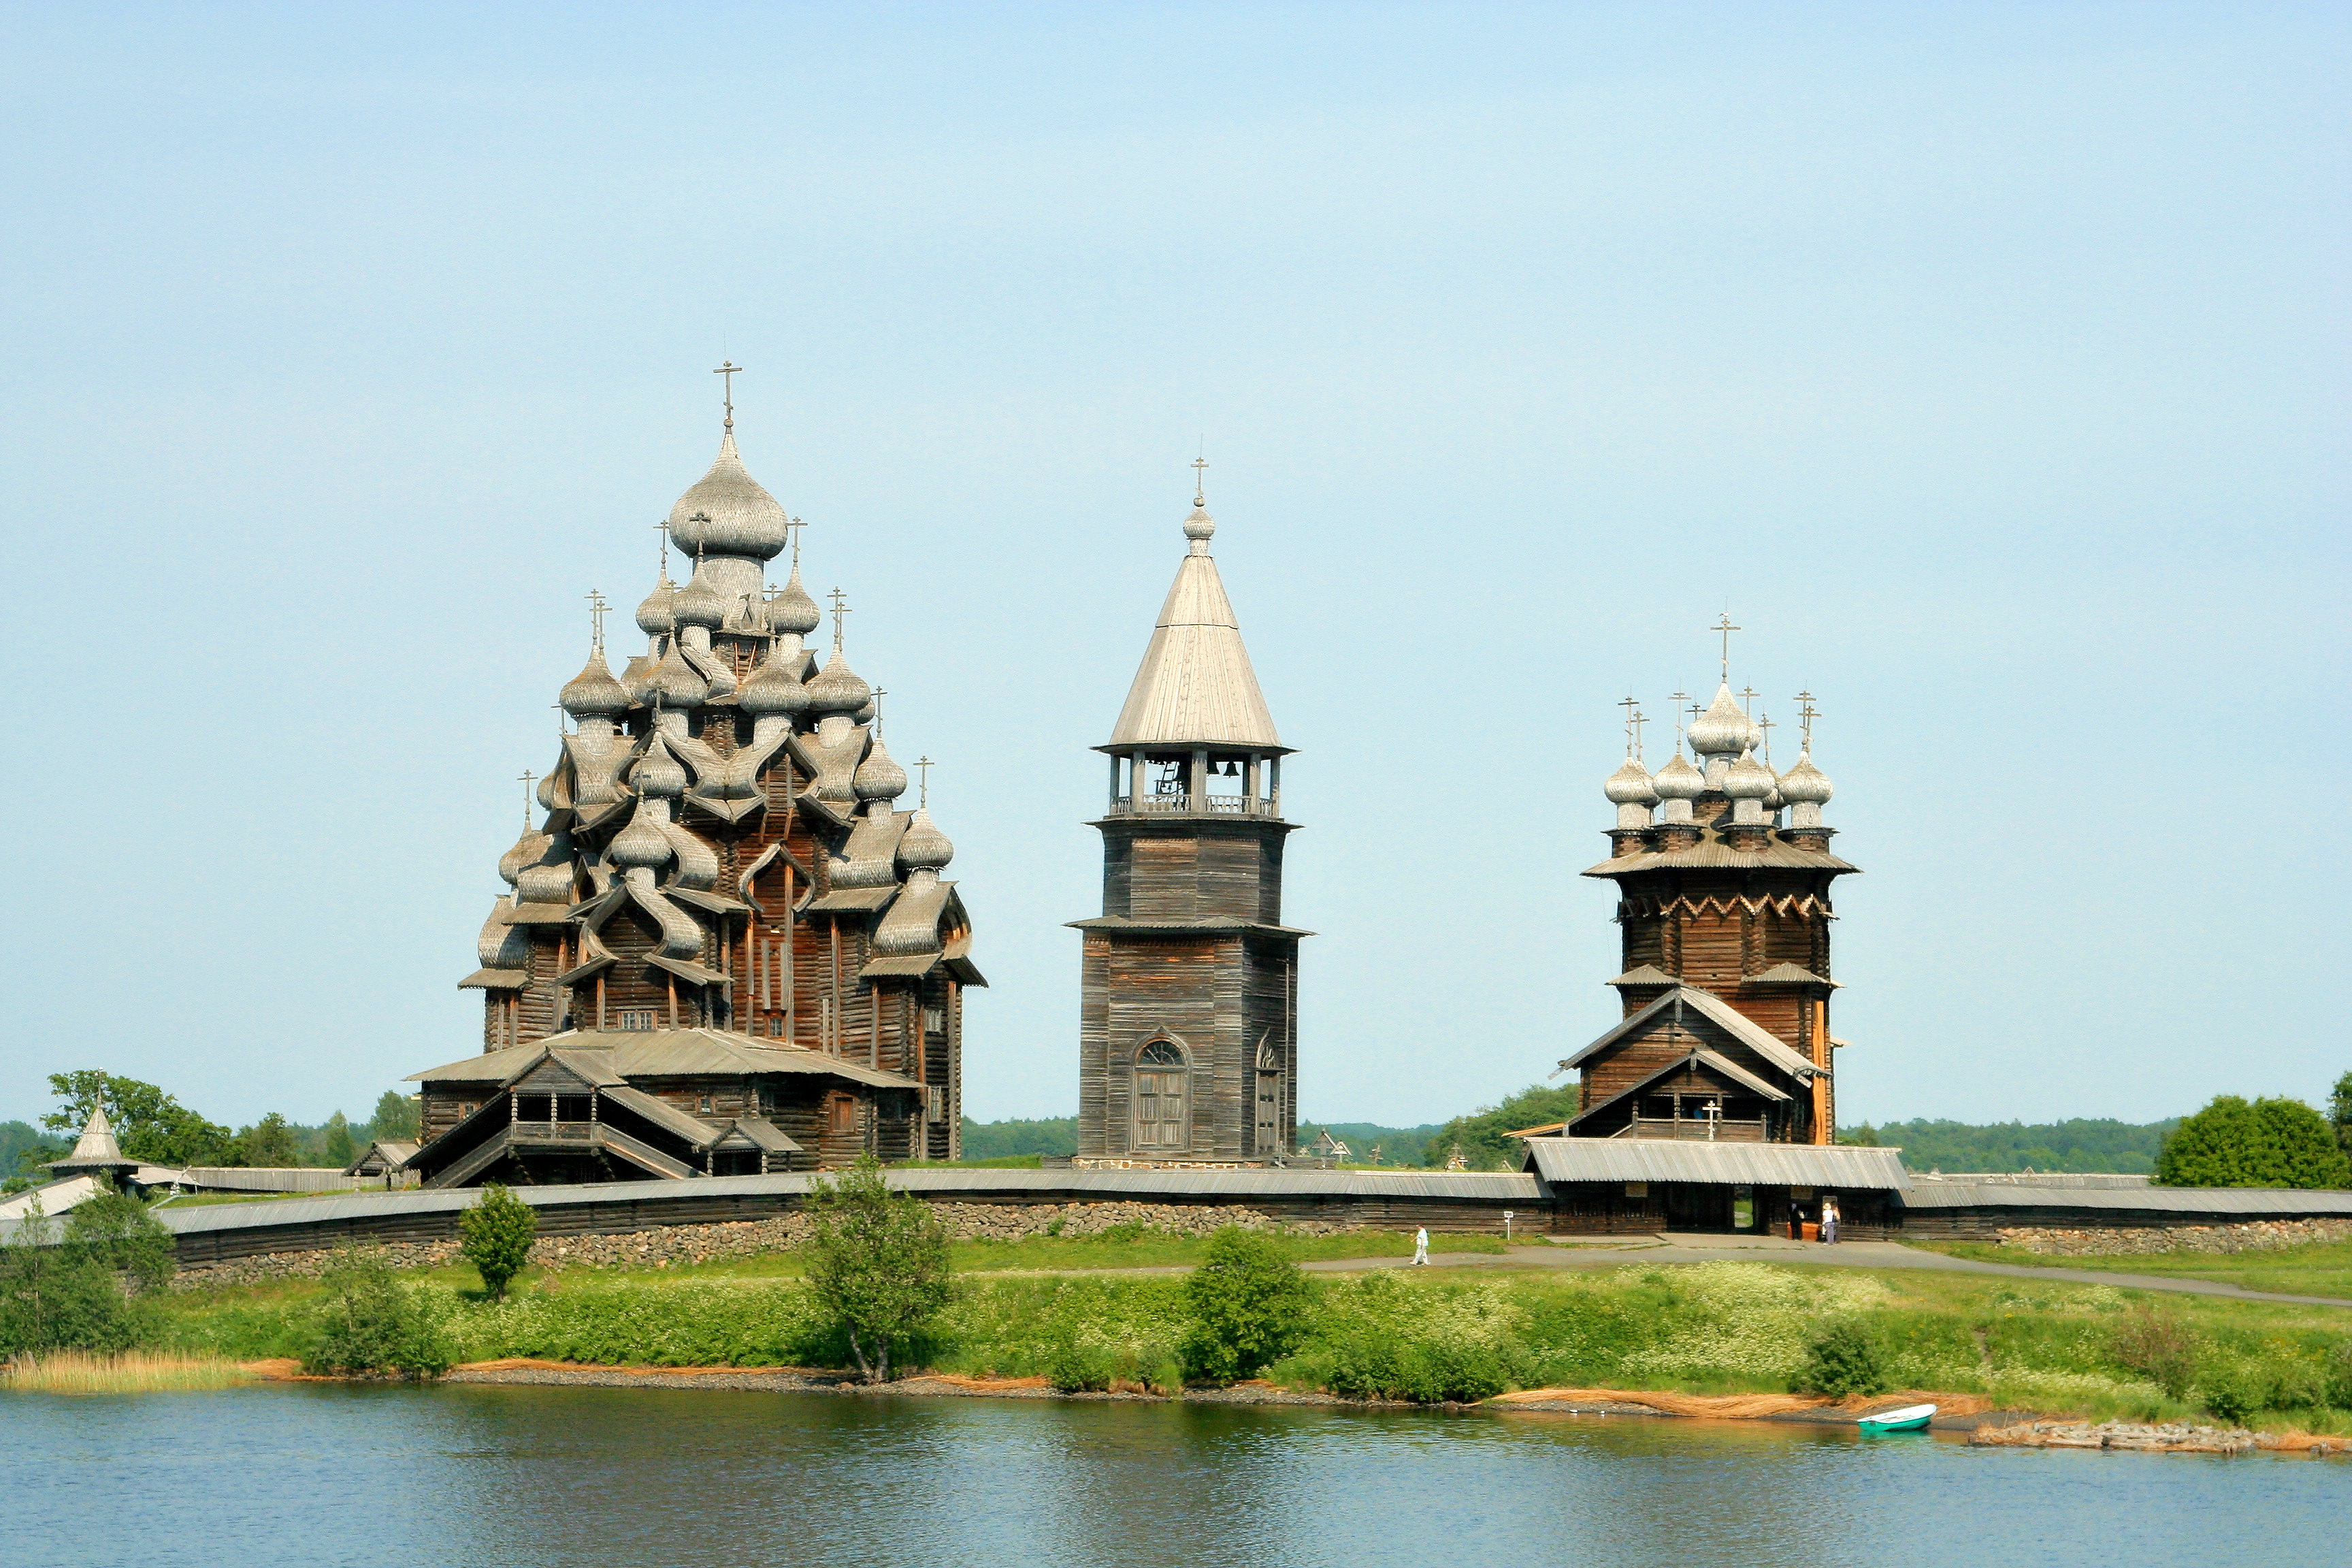 https://upload.wikimedia.org/wikipedia/commons/0/0e/Kizhi_churches.jpg